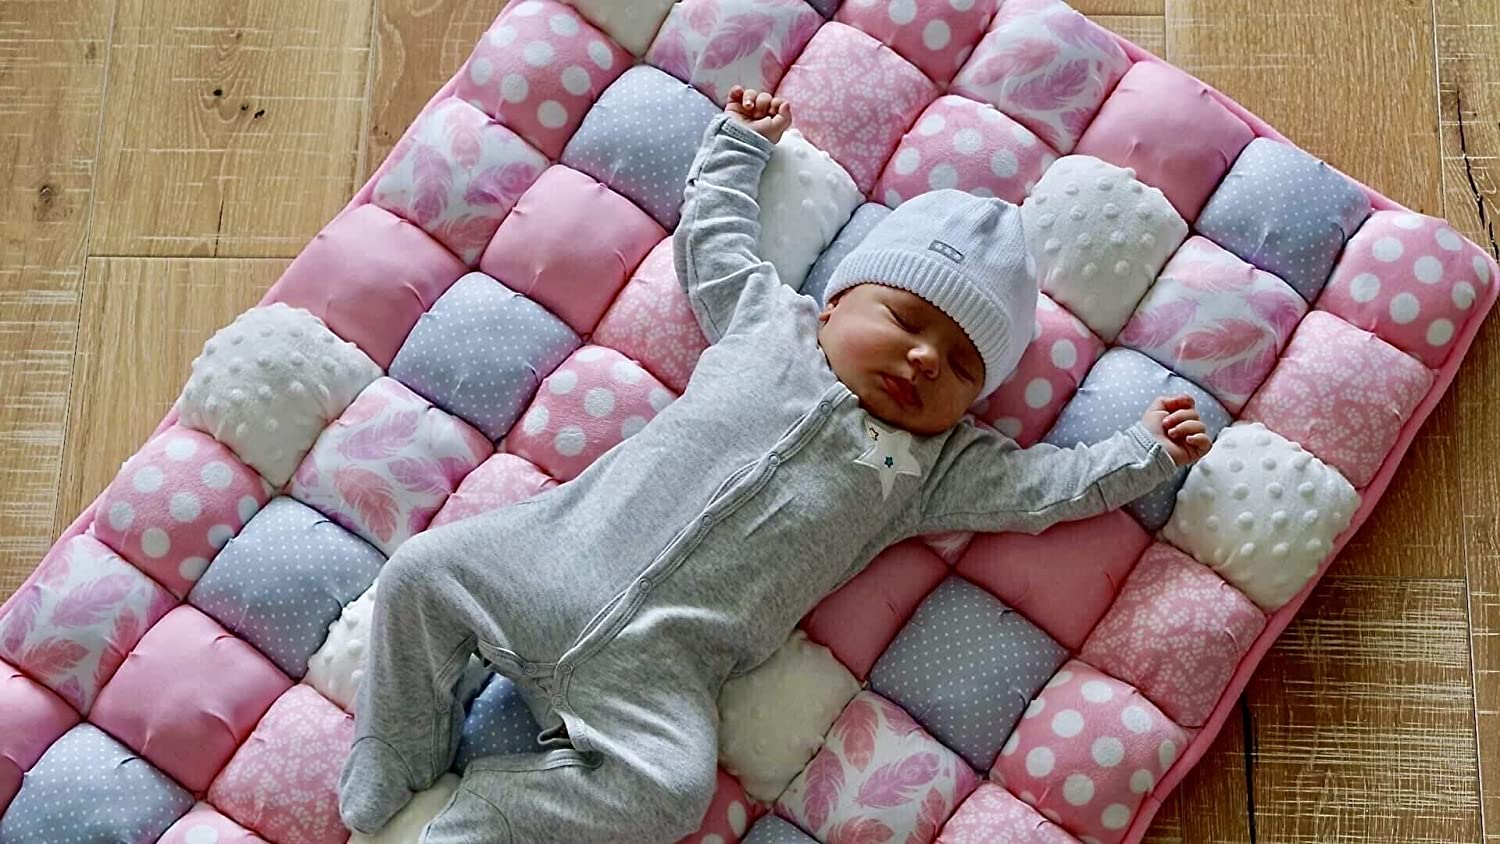 Puff Quilt Plush Baby Mat by Little Fawn Co – Bubble Quilt for Lounging and Tummy Time Pink and Grey